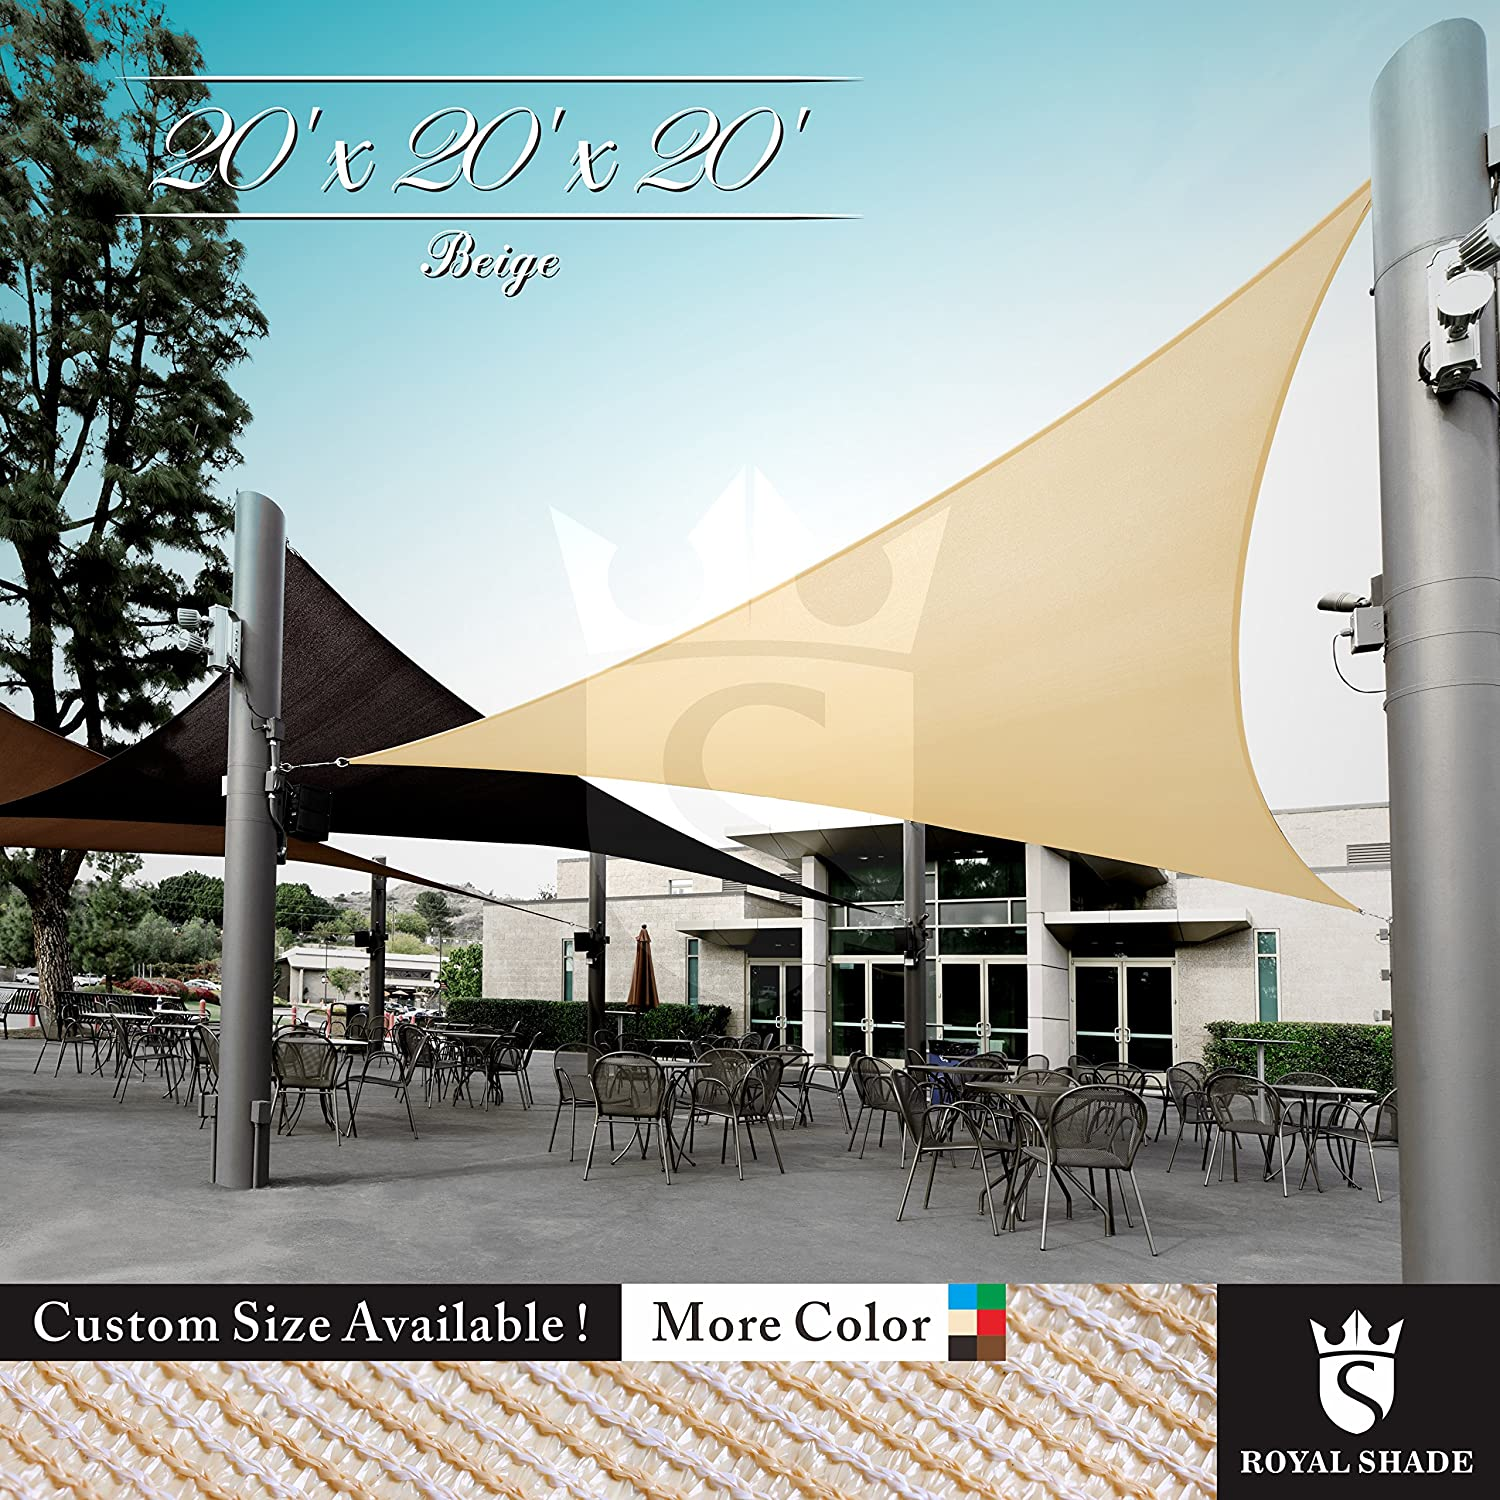 Amazon.com: Royal Shade - Toldo de malla para toldo o toldo ...